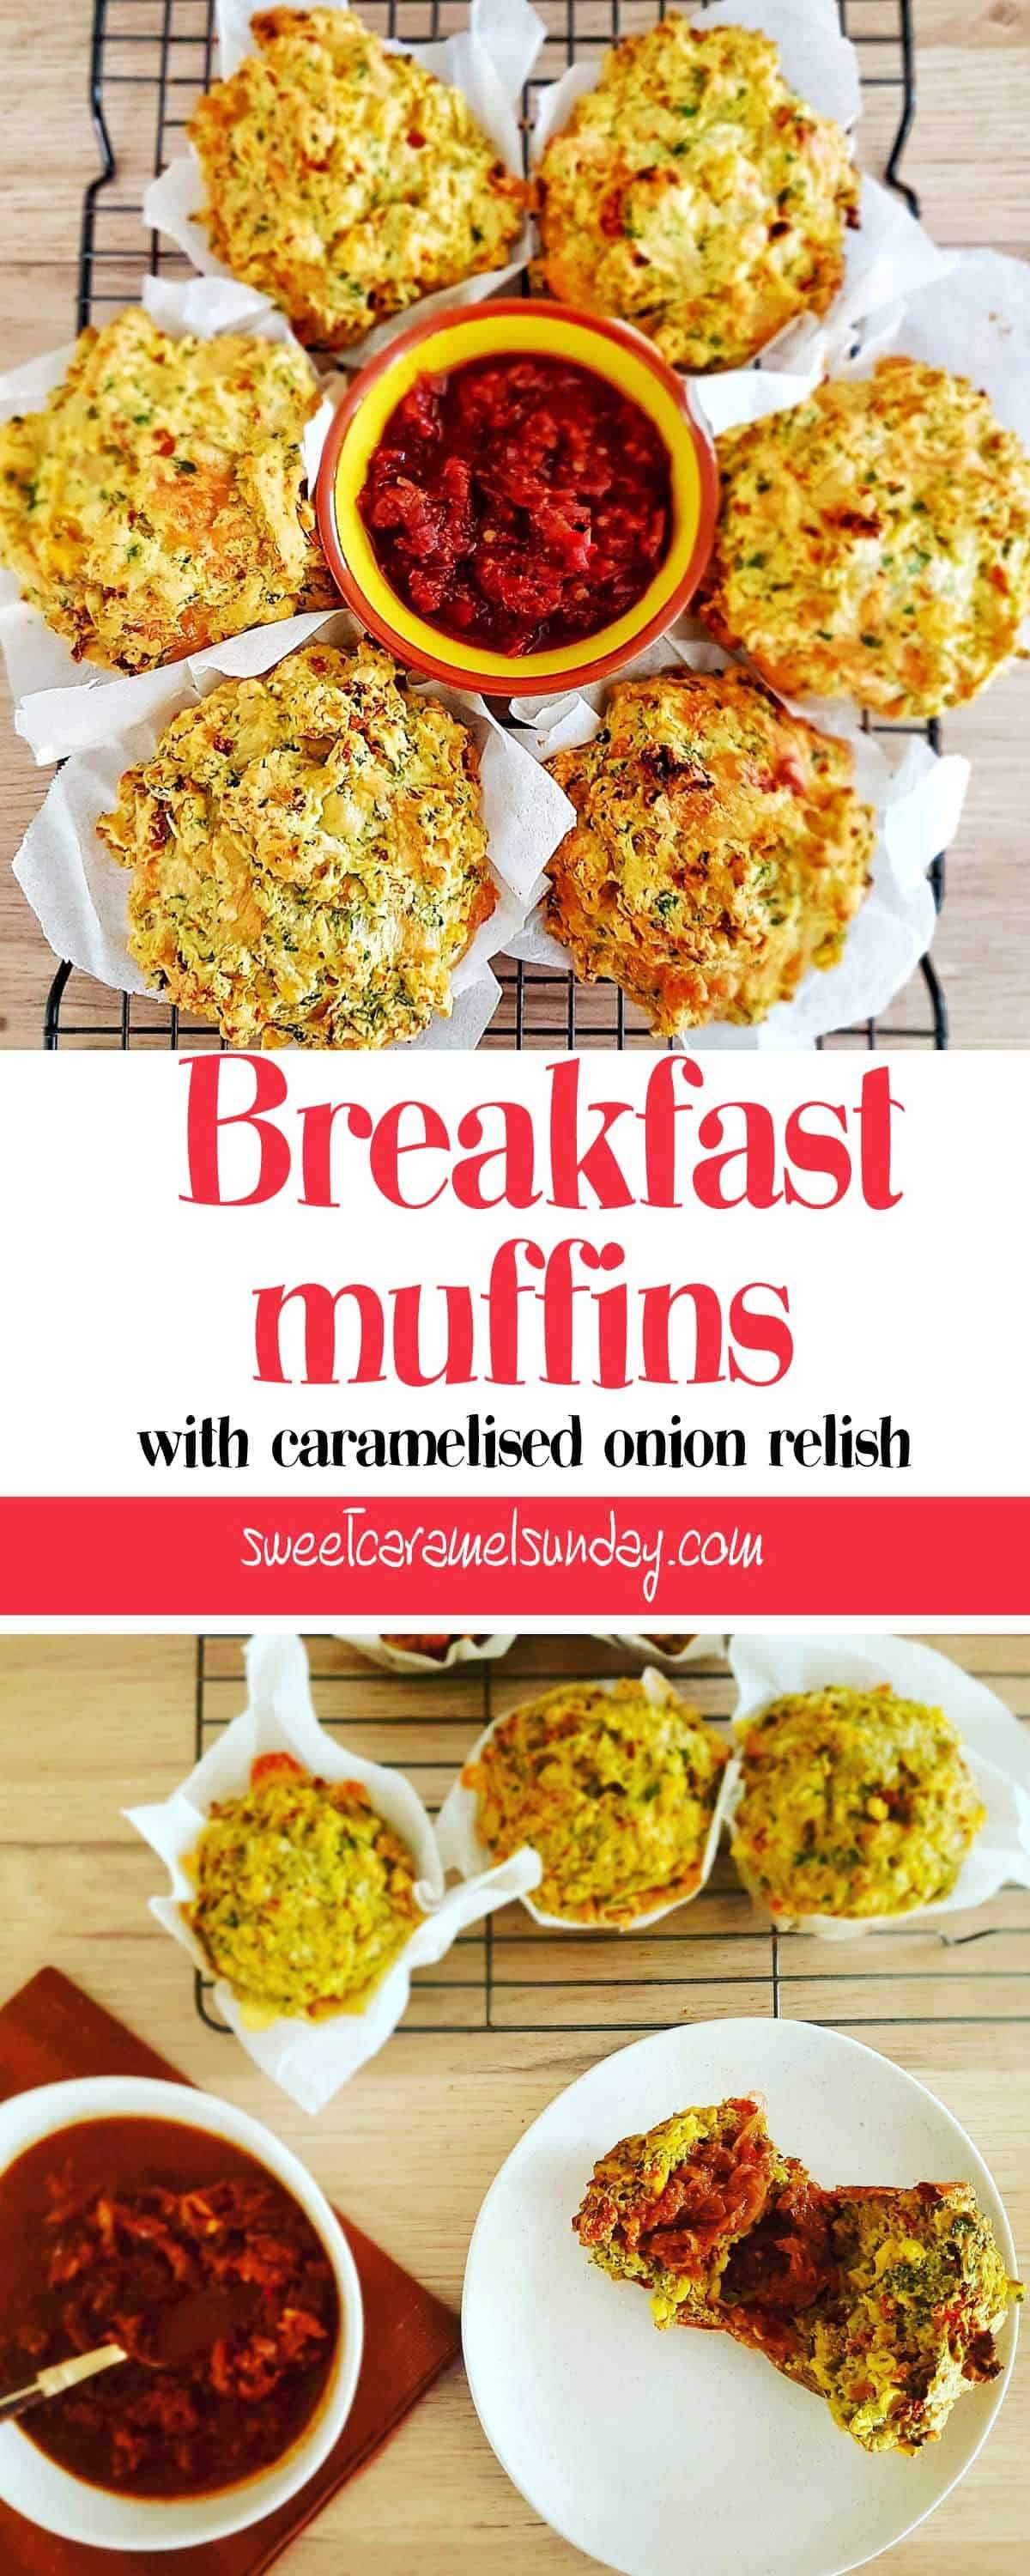 Breakfast Muffins with a savoury relish and text overlay